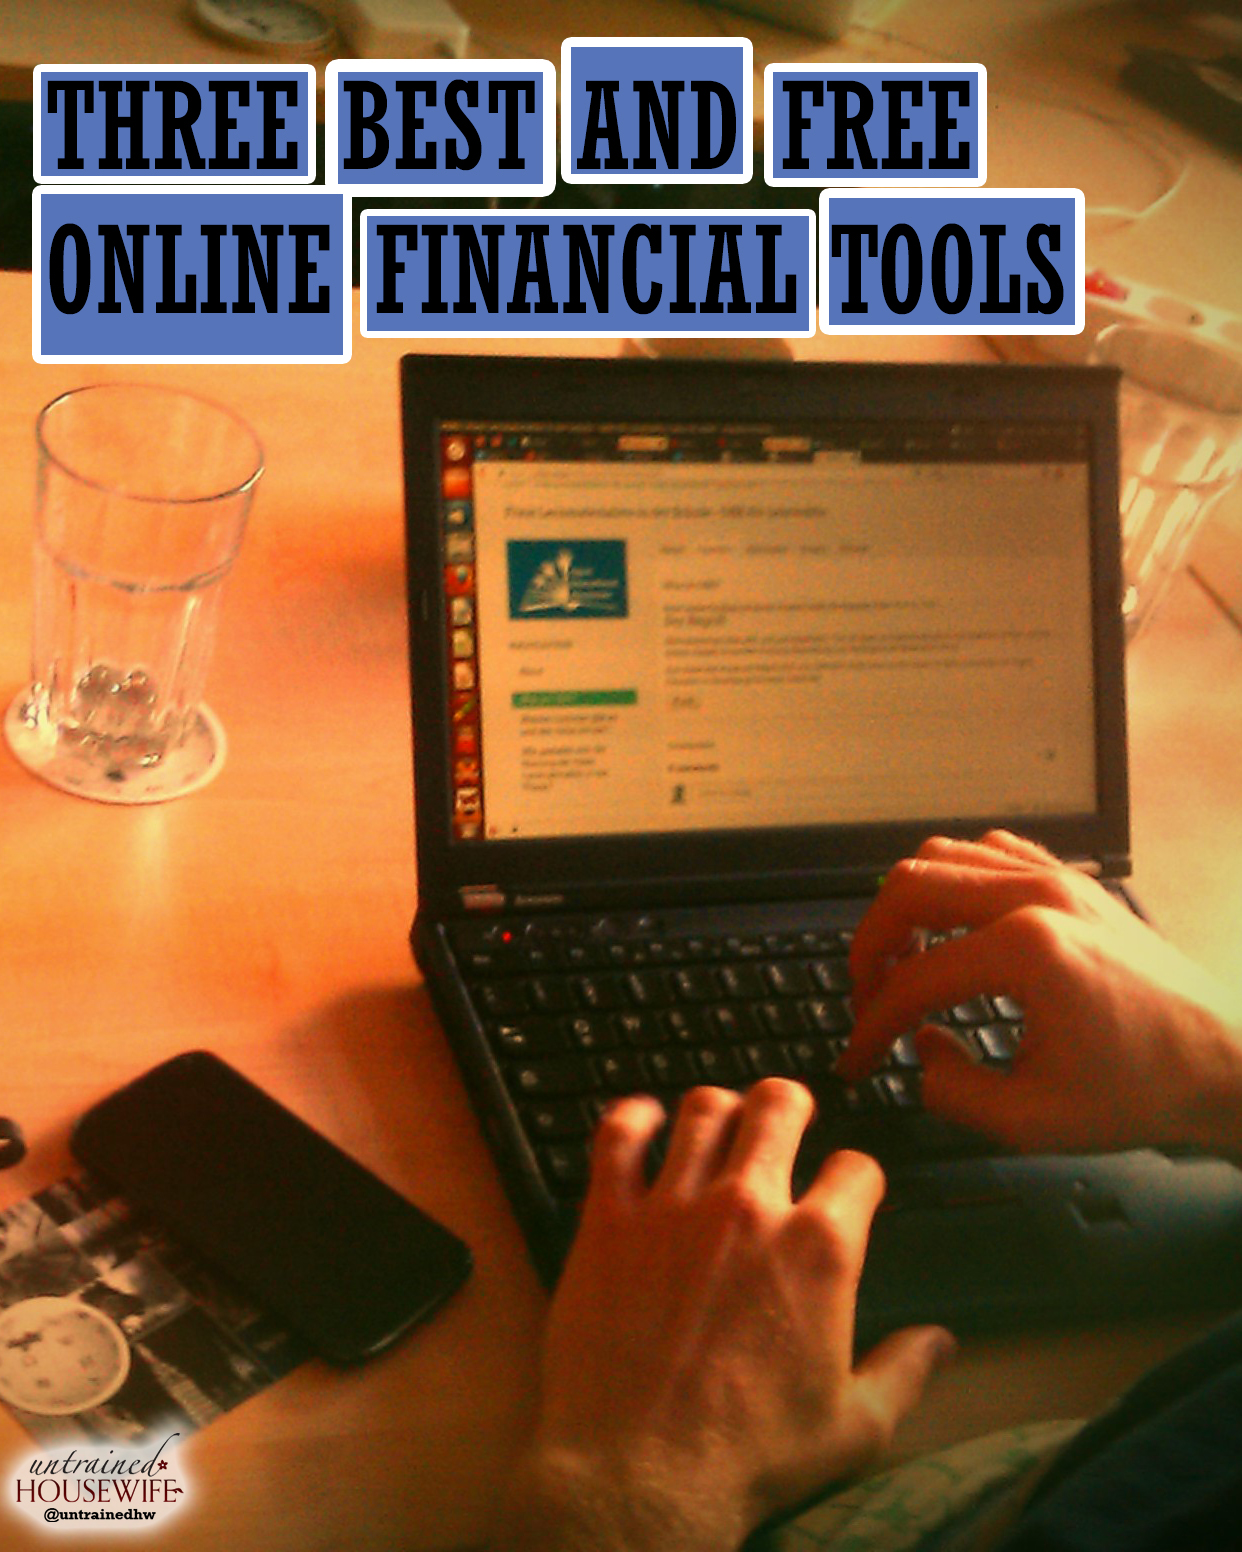 Three Best and Free Online Financial Tools